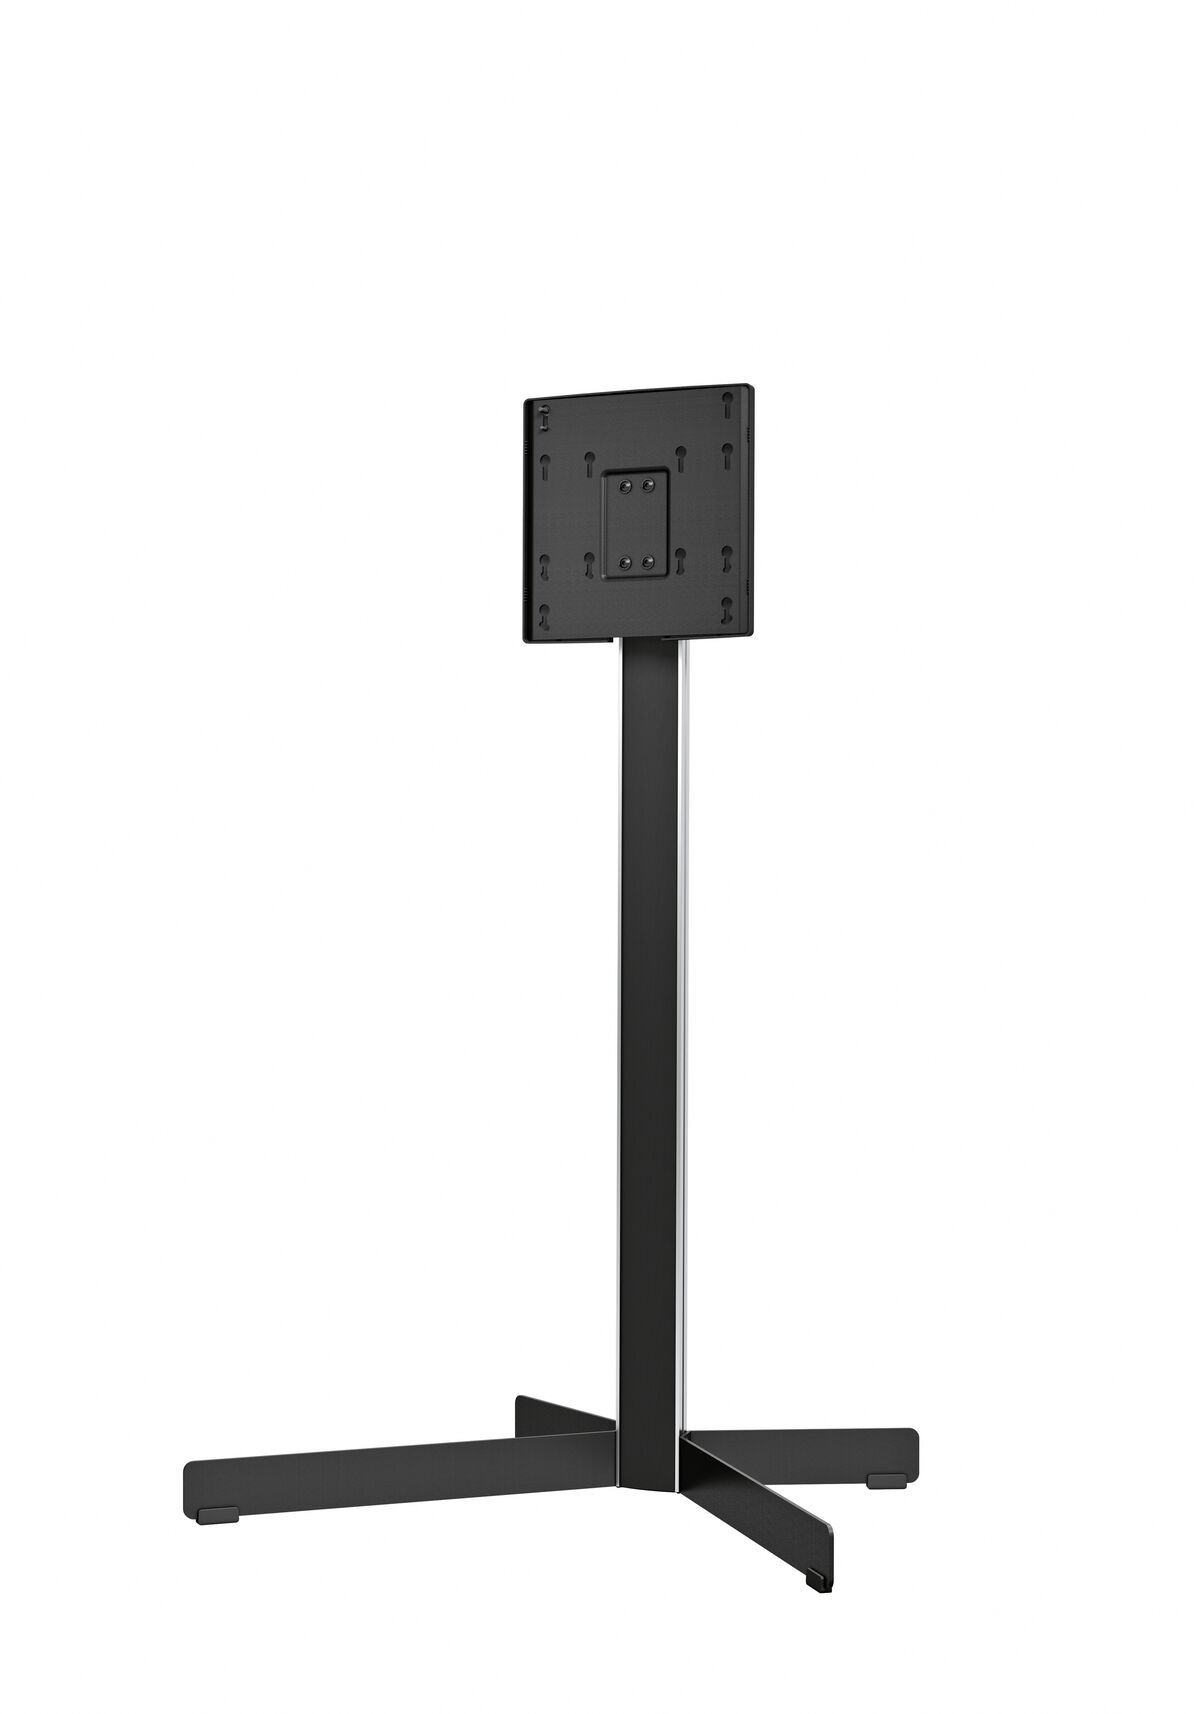 Vogel's EFF 8230 TV Floor Stand - Suitable for 19 up to 40 inch TVs up to 30 kg - Product